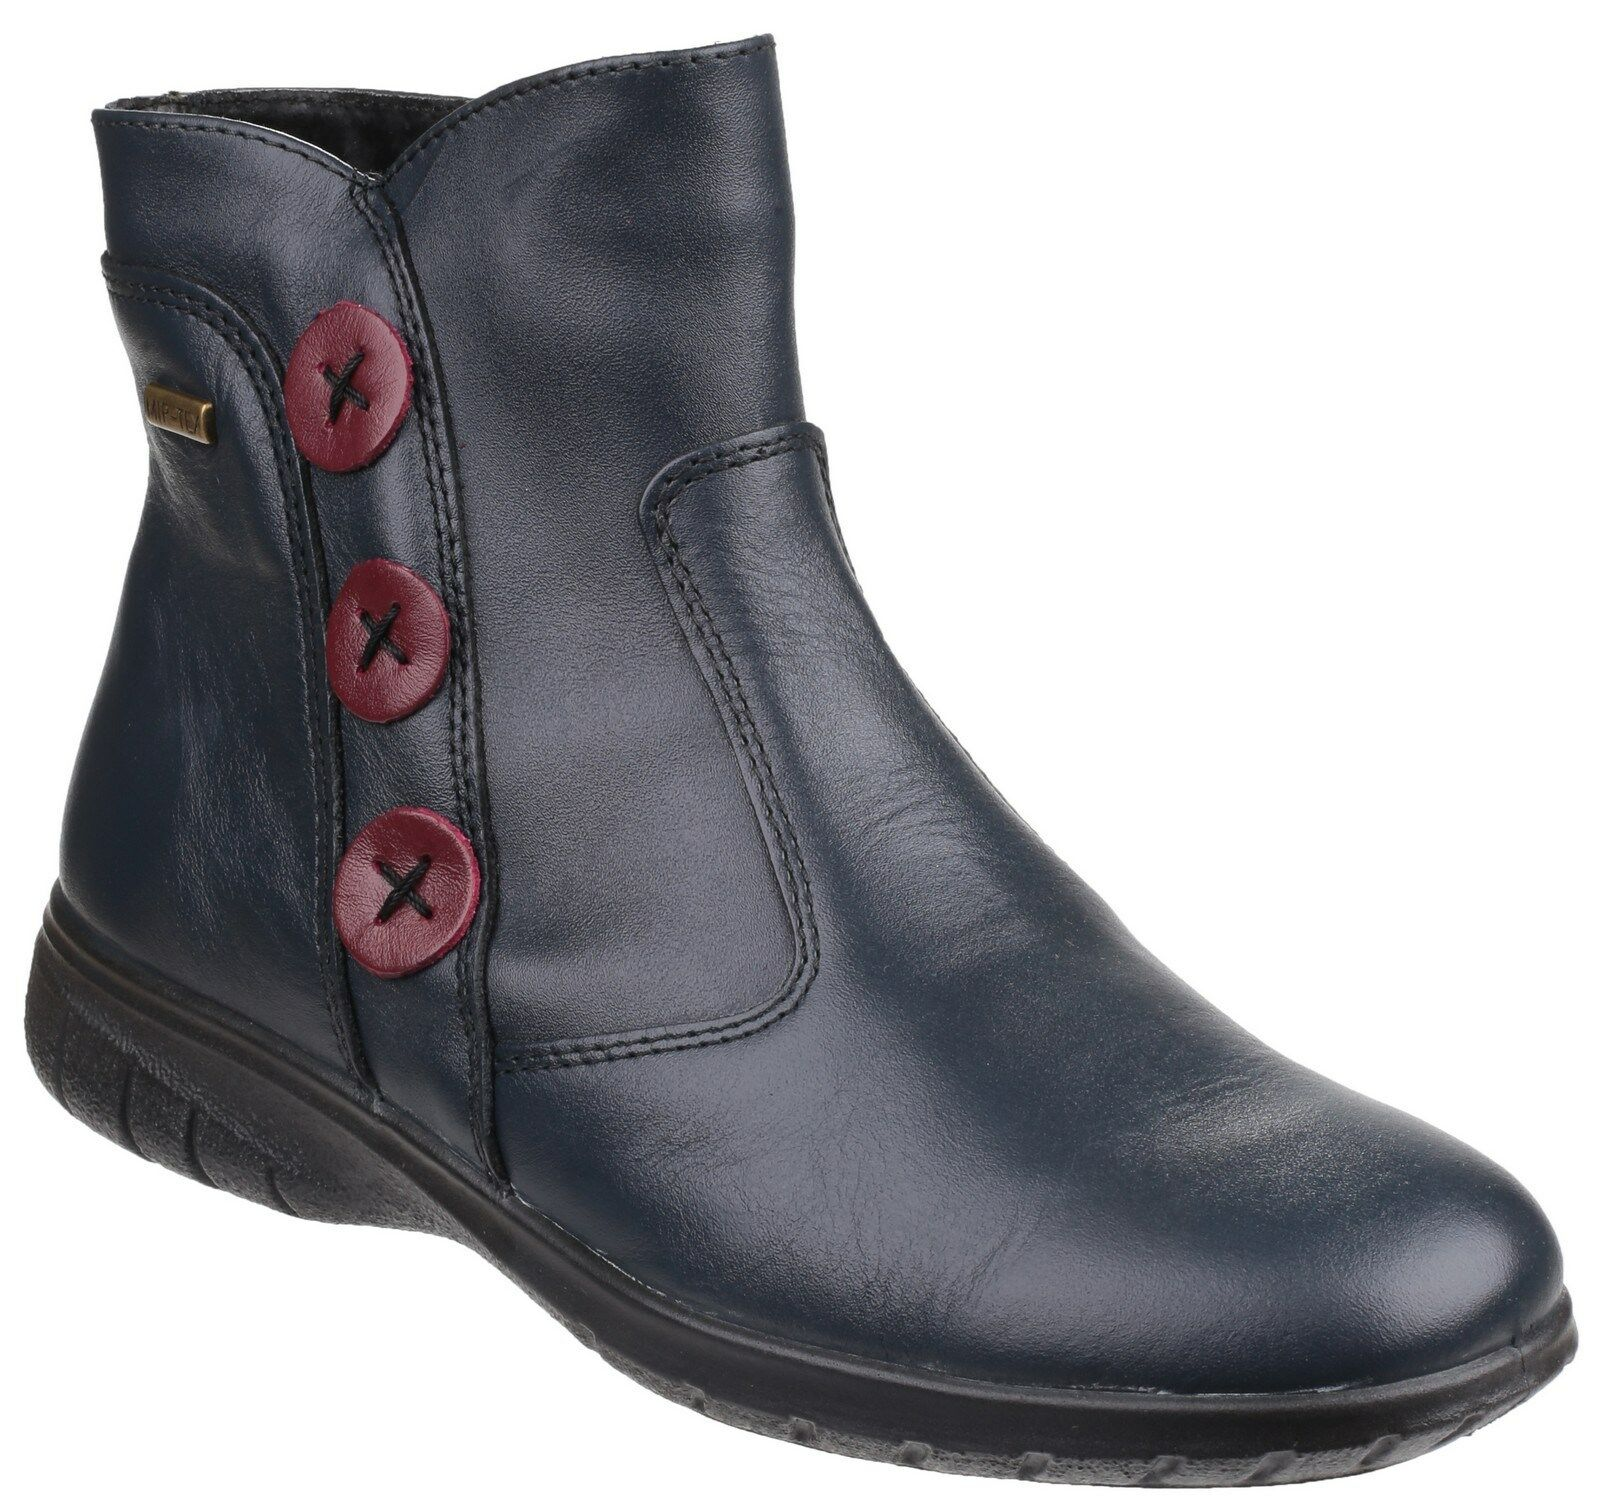 Cotswold Dowdeswell Dowdeswell Dowdeswell Womens Zip-up Ankle Boot  UK3-8 4f3980